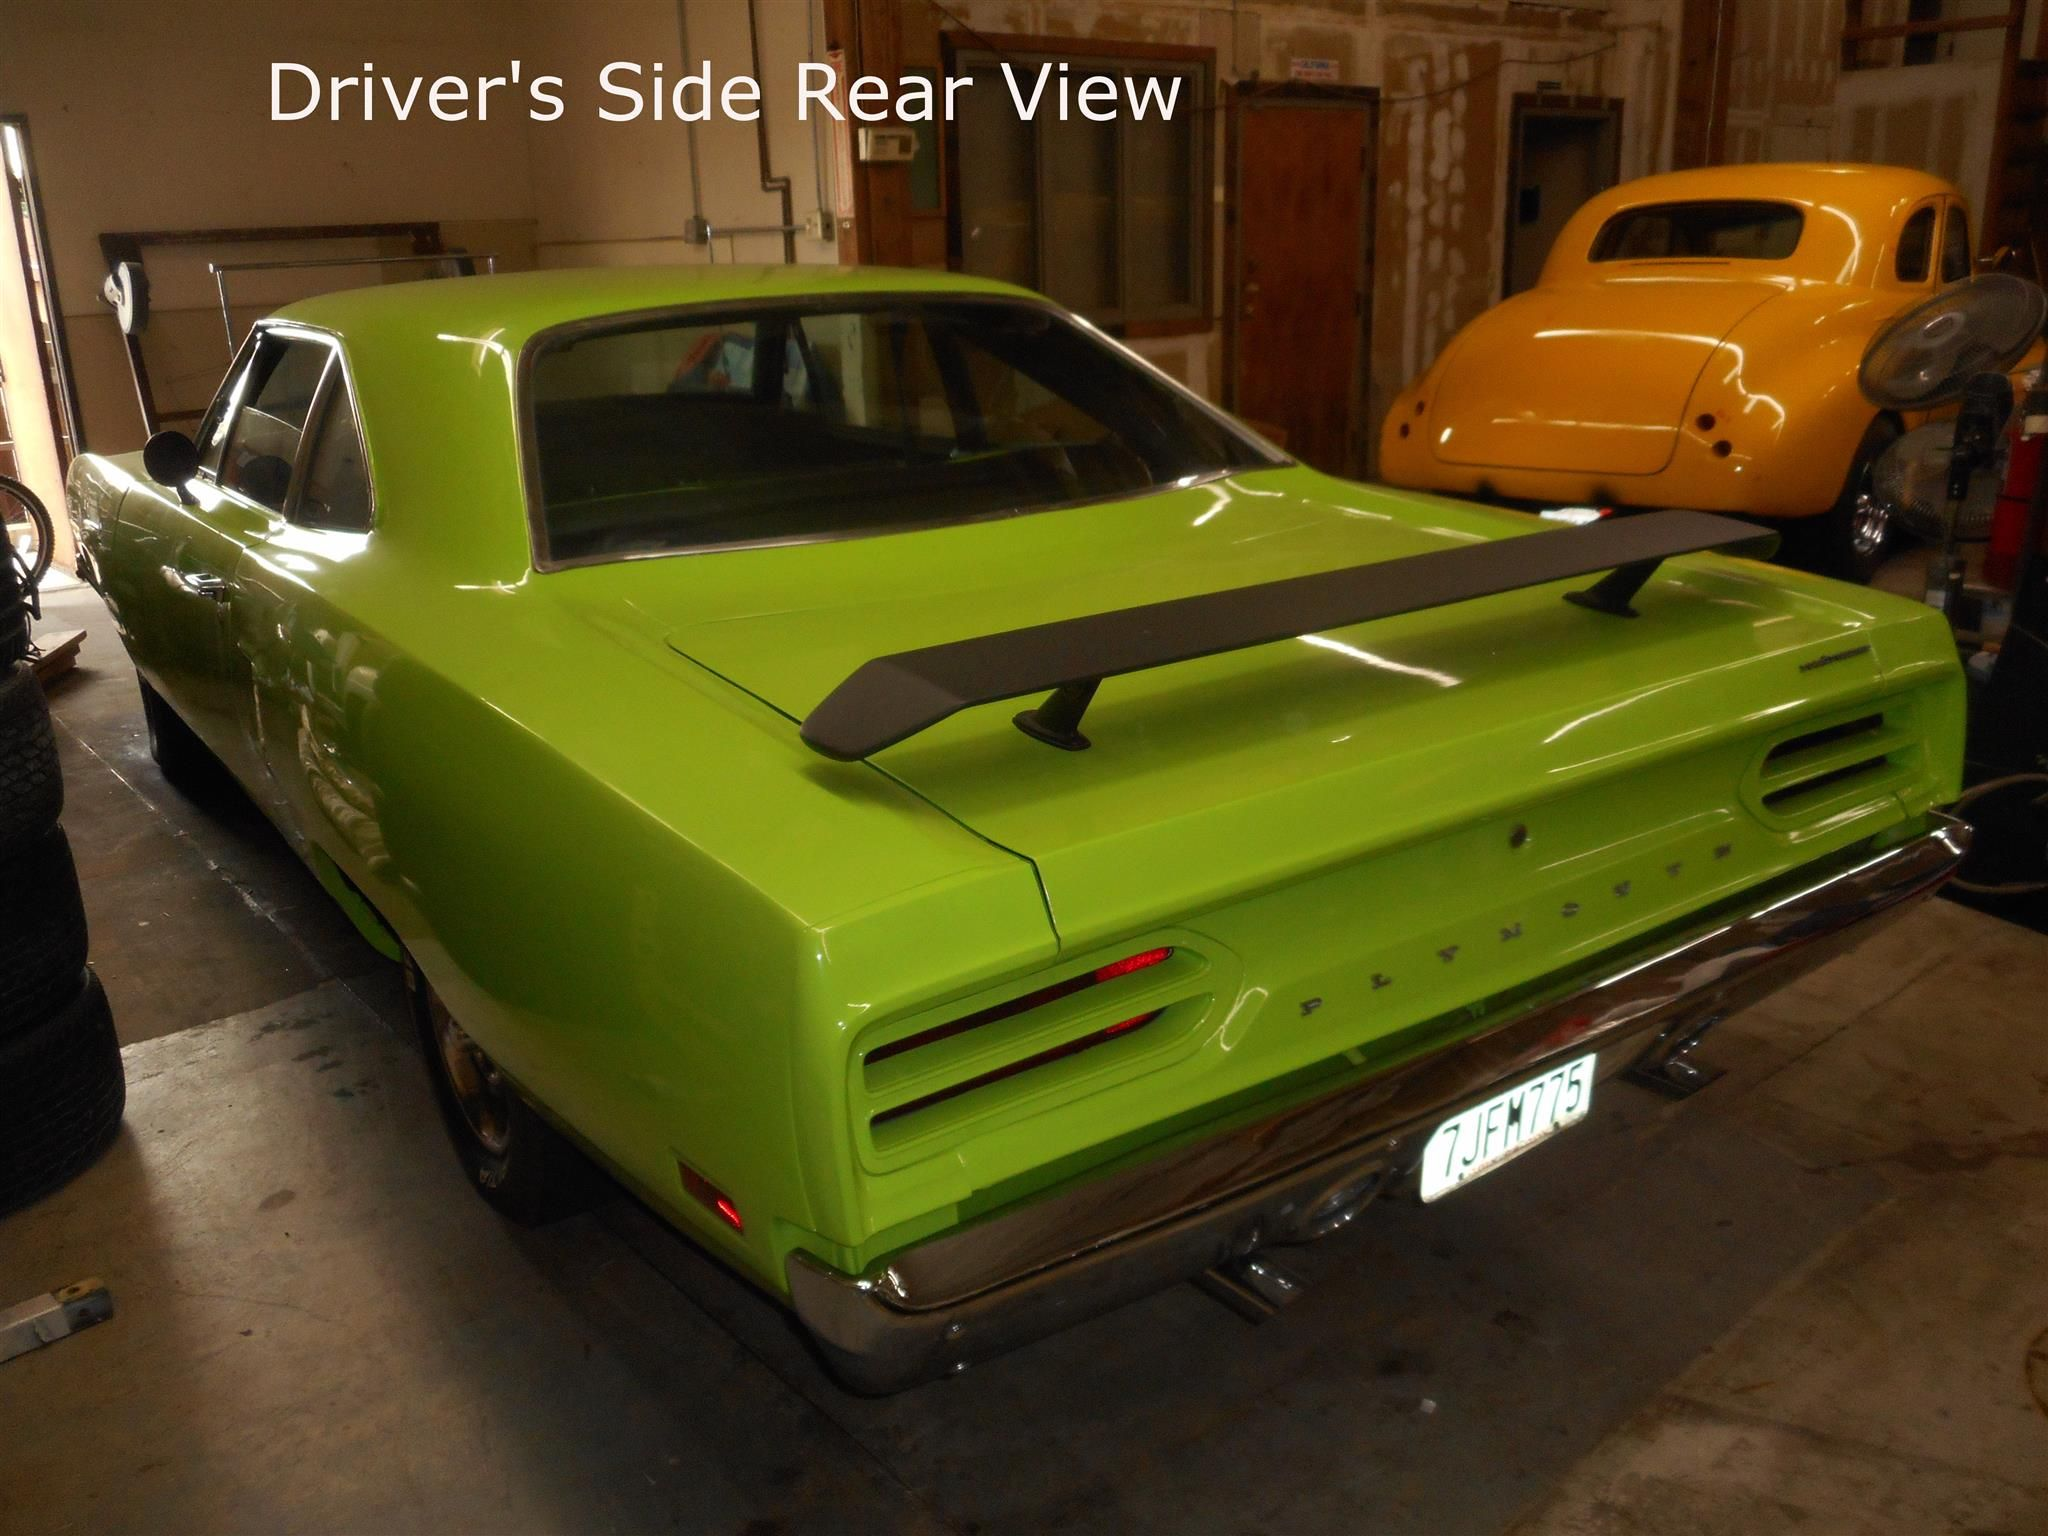 1970 Lime Green Plymouth Roadrunner For Sale Rancho Cucamonga Ca Automaxx1 Photo 182255 Plymouth Roadrunner Plymouth Lime Green